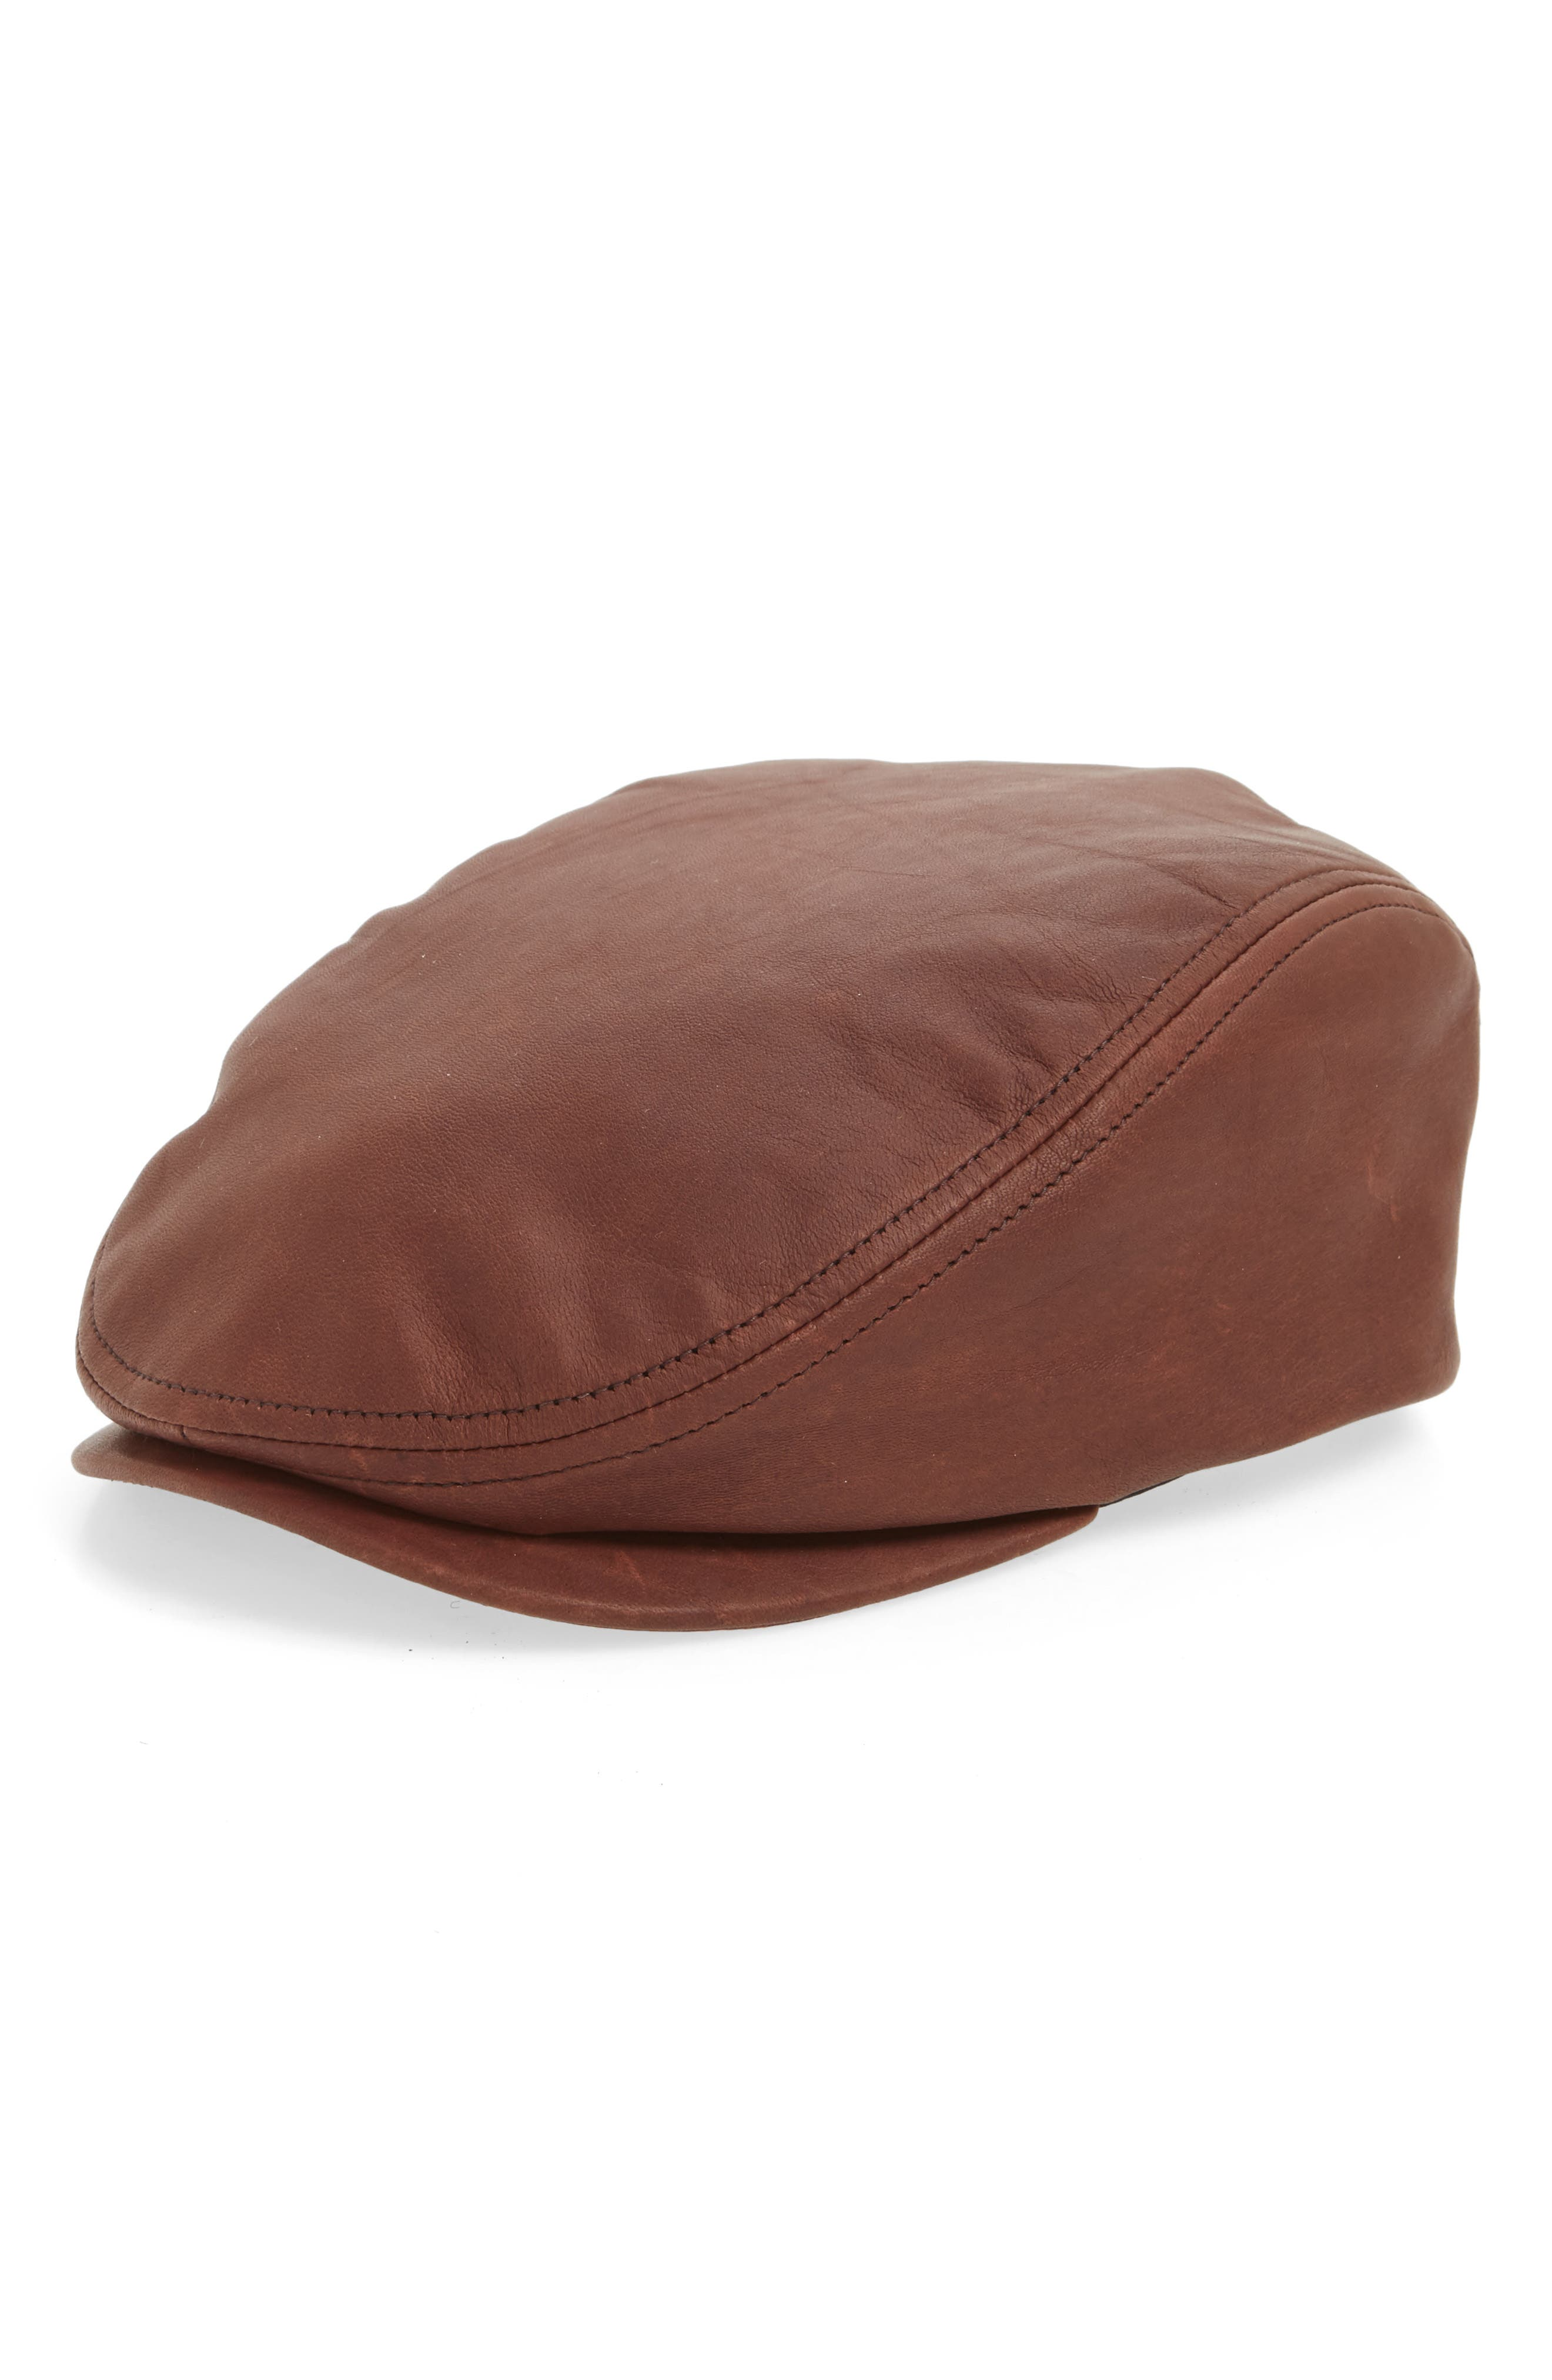 Leather Driving Cap,                         Main,                         color, MED. BROWN